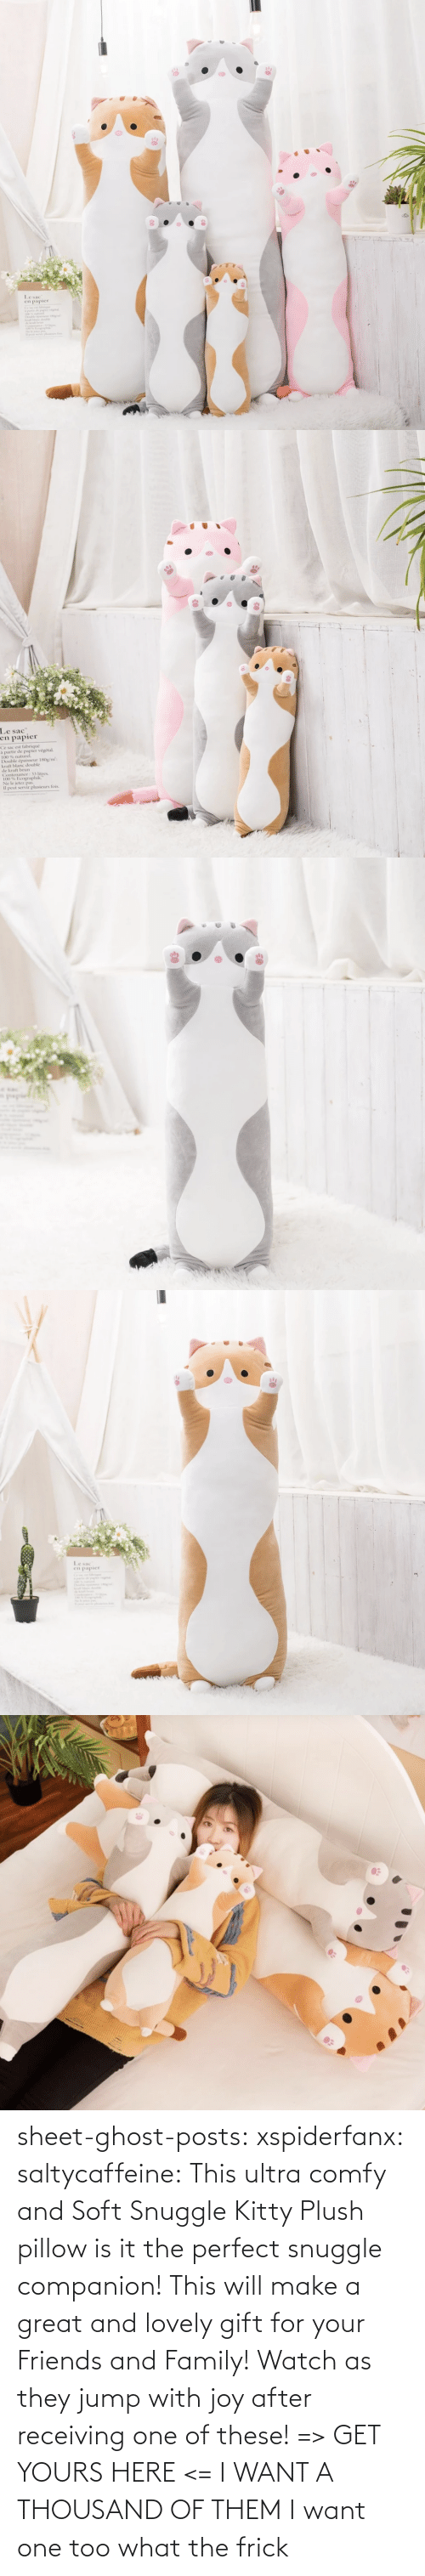 I Want A: sheet-ghost-posts: xspiderfanx:  saltycaffeine:  This ultra comfy and Soft Snuggle Kitty Plush pillow is it the perfect snuggle companion! This will make a great and lovely gift for your Friends and Family! Watch as they jump with joy after receiving one of these! => GET YOURS HERE <=    I WANT A THOUSAND OF THEM  I want one too what the frick